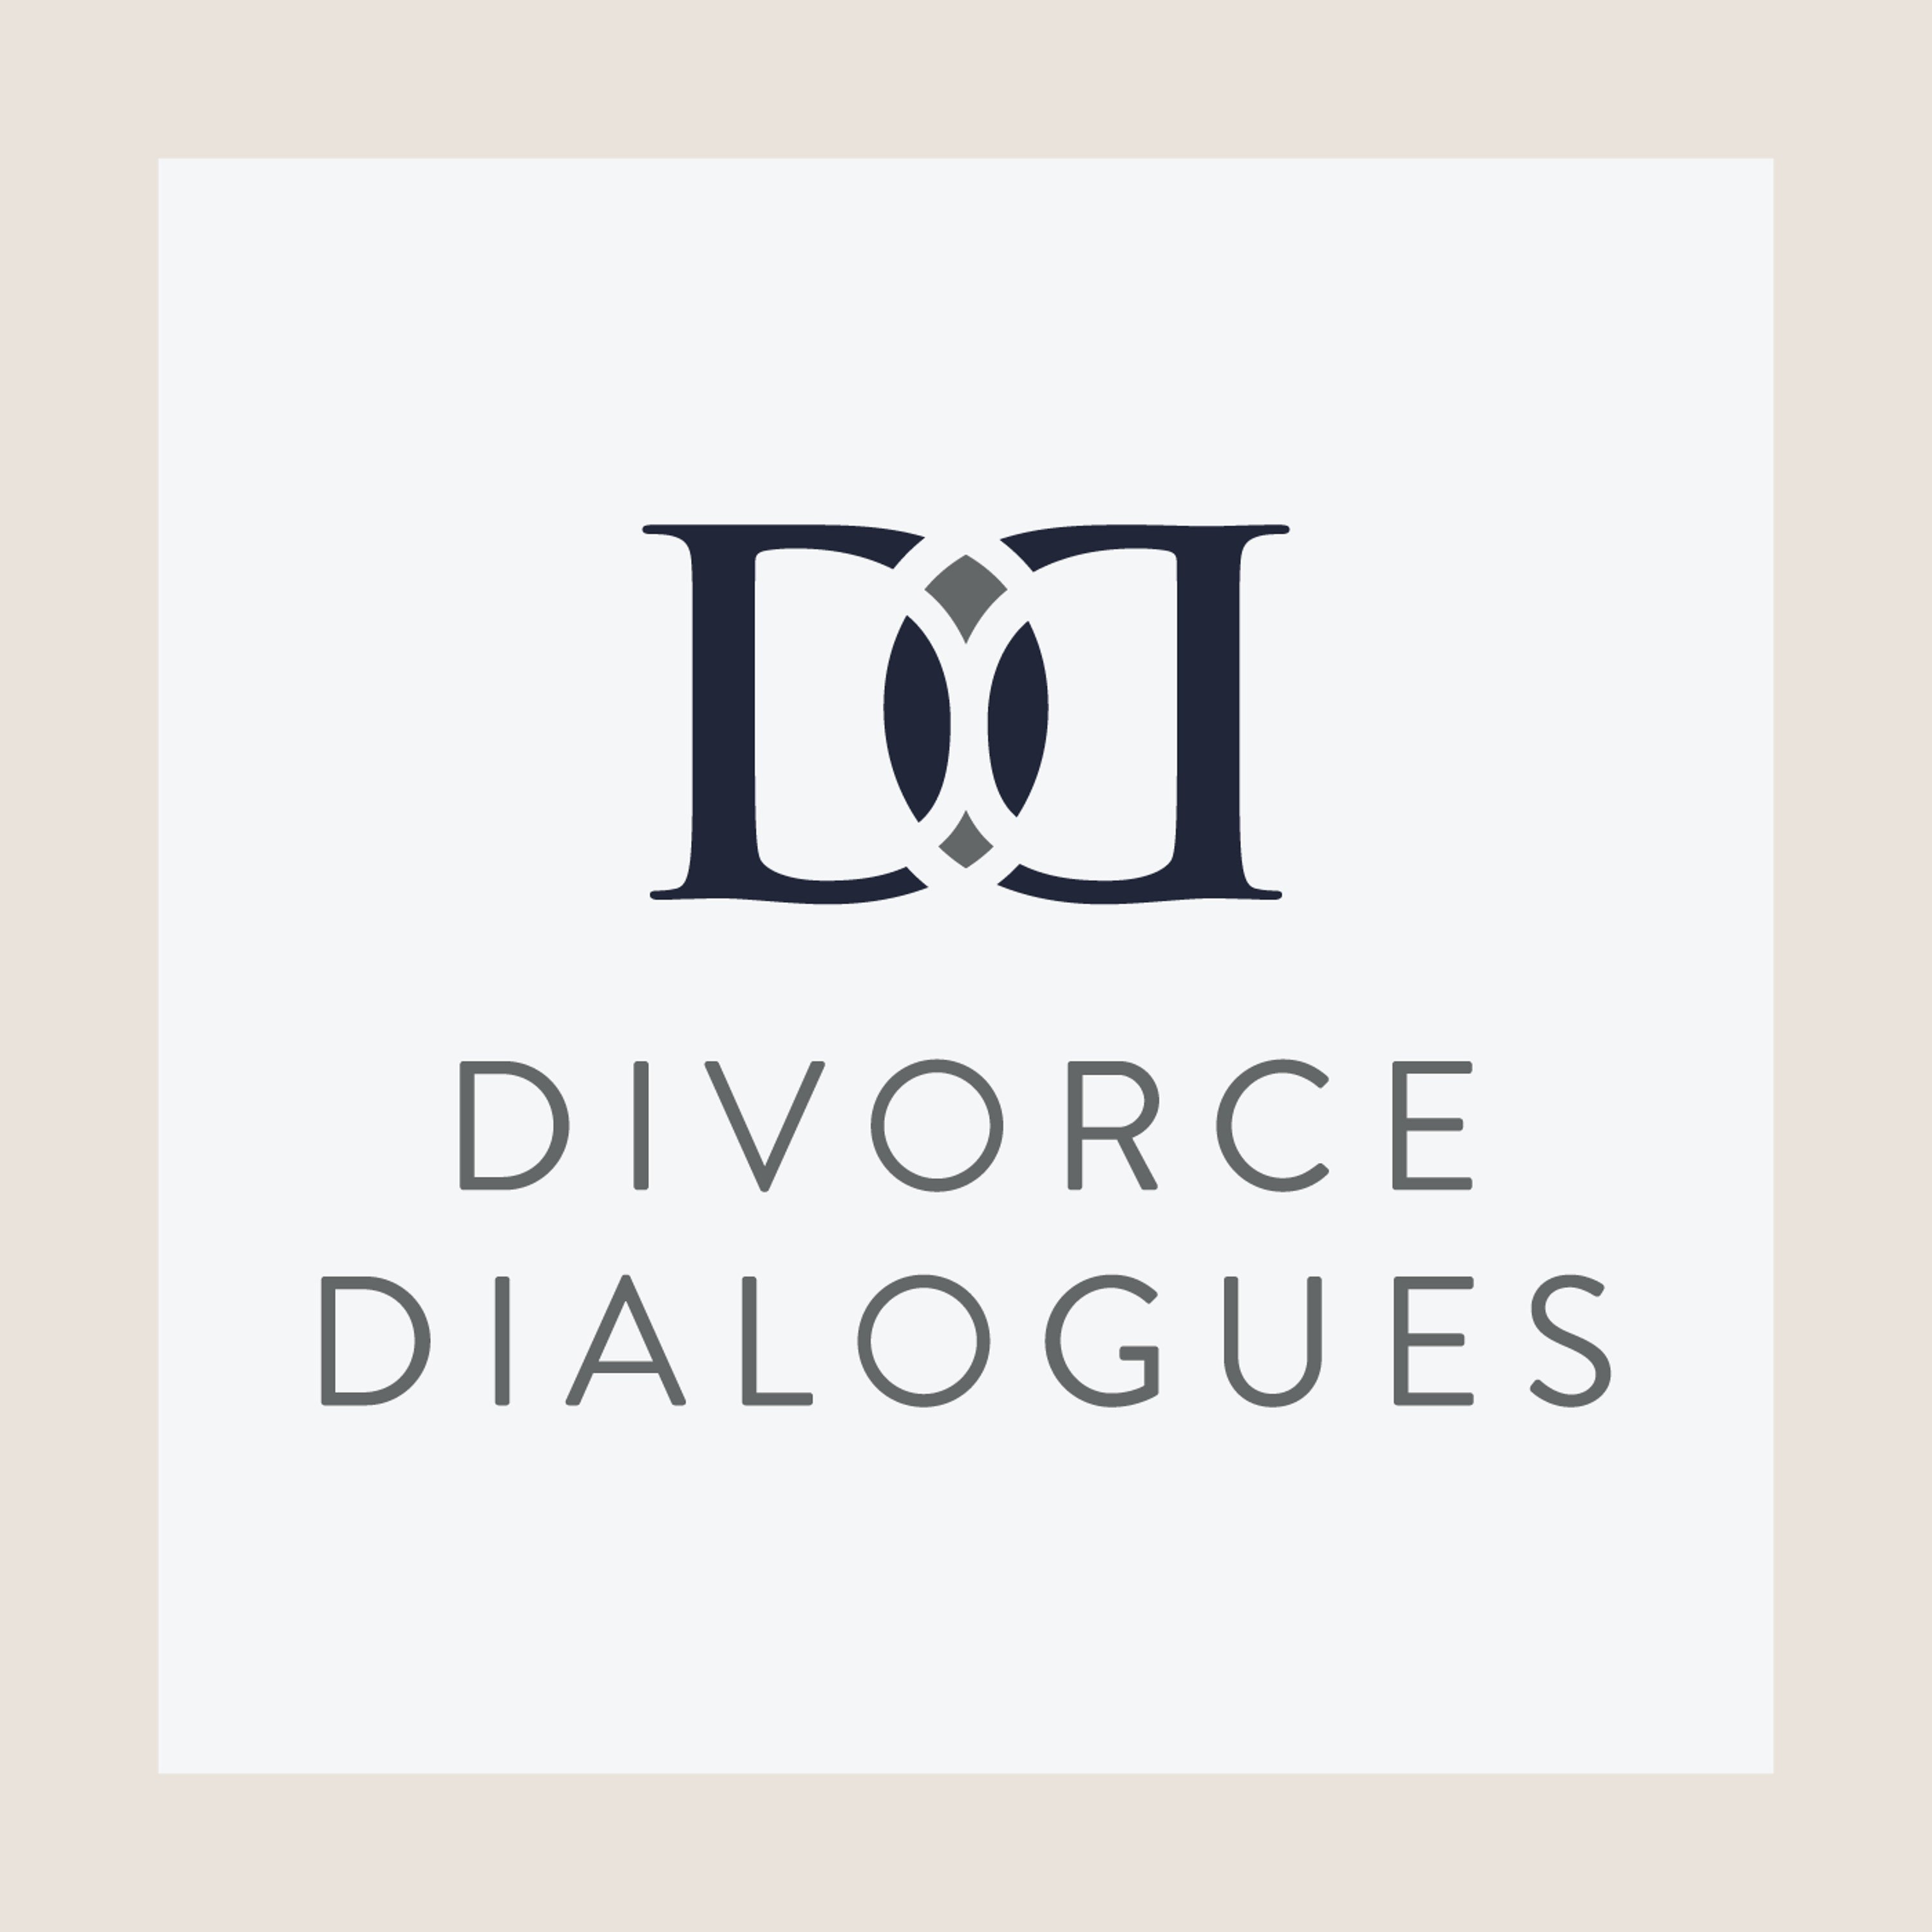 Divorce Dialogues - Telling the Story of Your Divorce with Steve Friedman